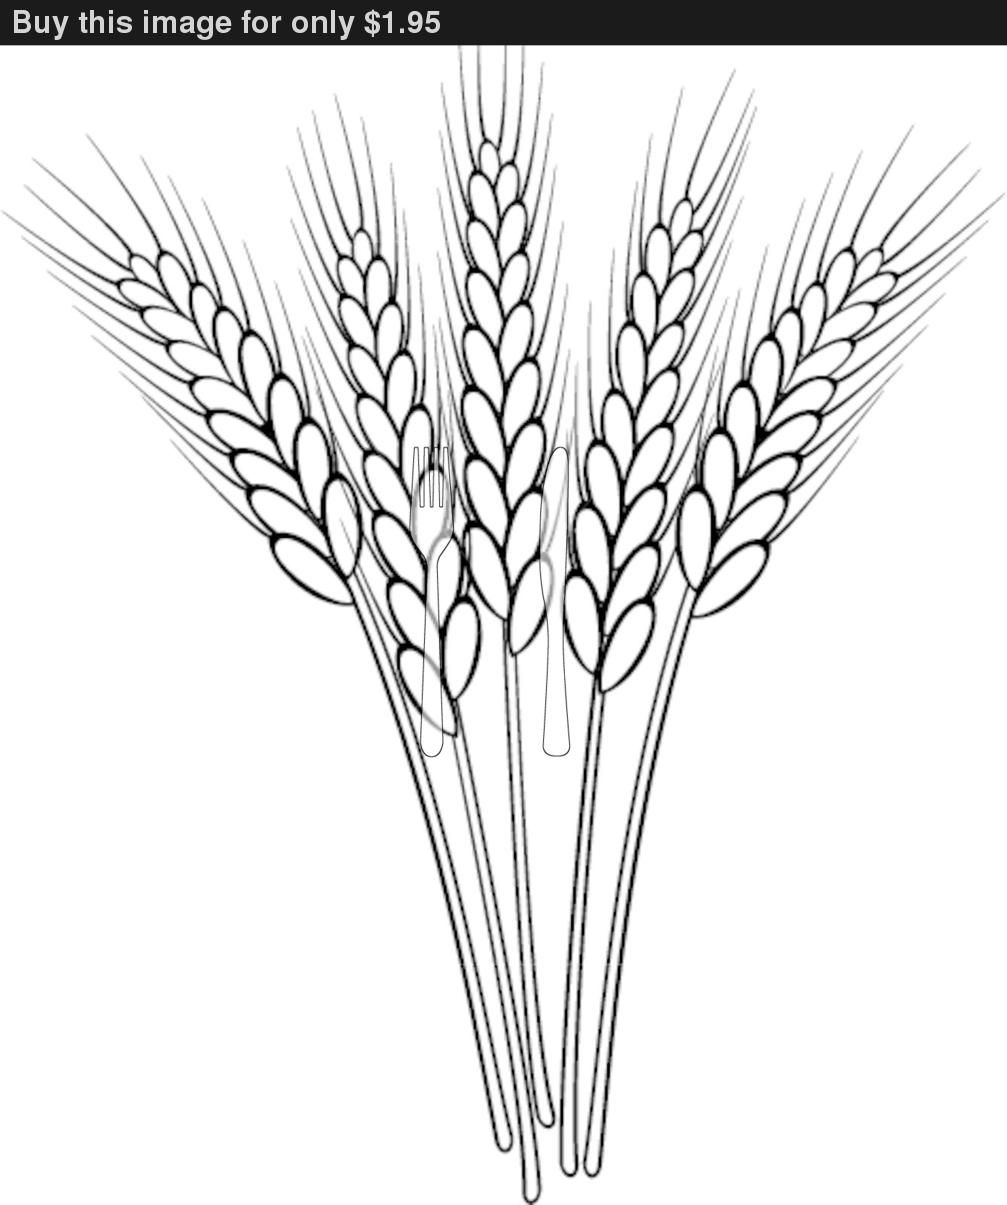 Free Wheat Cliparts, Download Free Clip Art, Free Clip Art on Clipart  Library